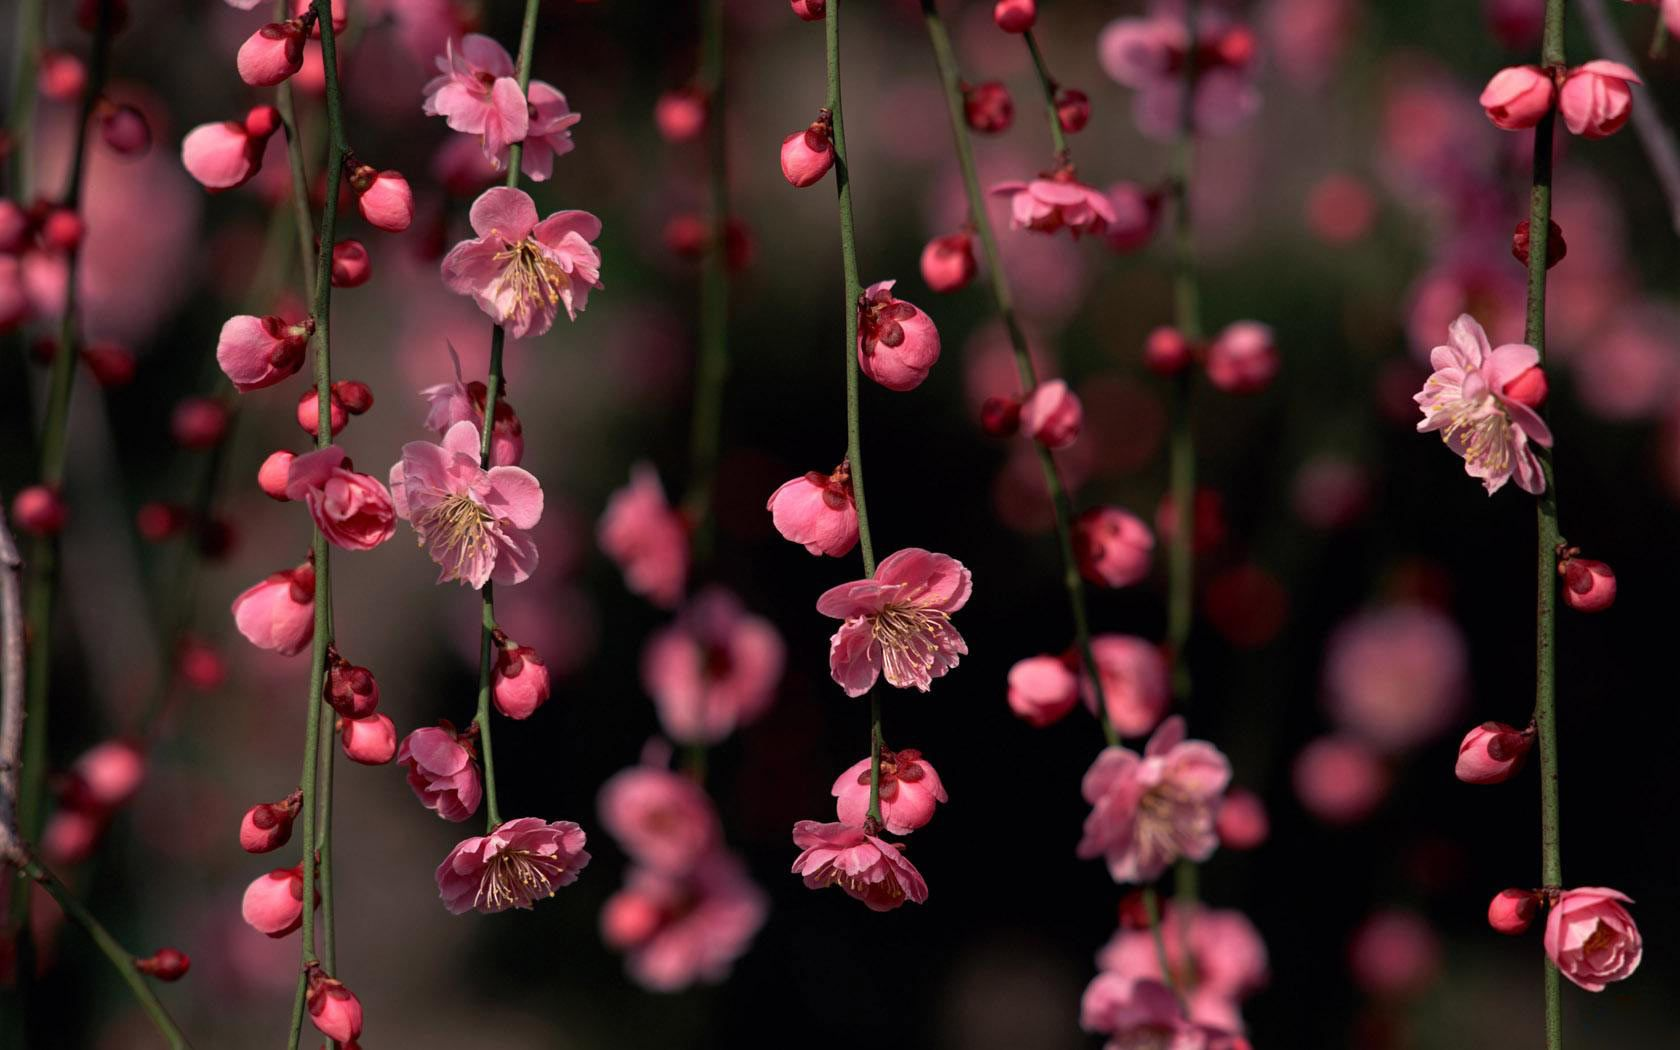 Spring flowers wallpaper nature wallpapers for free download about ...